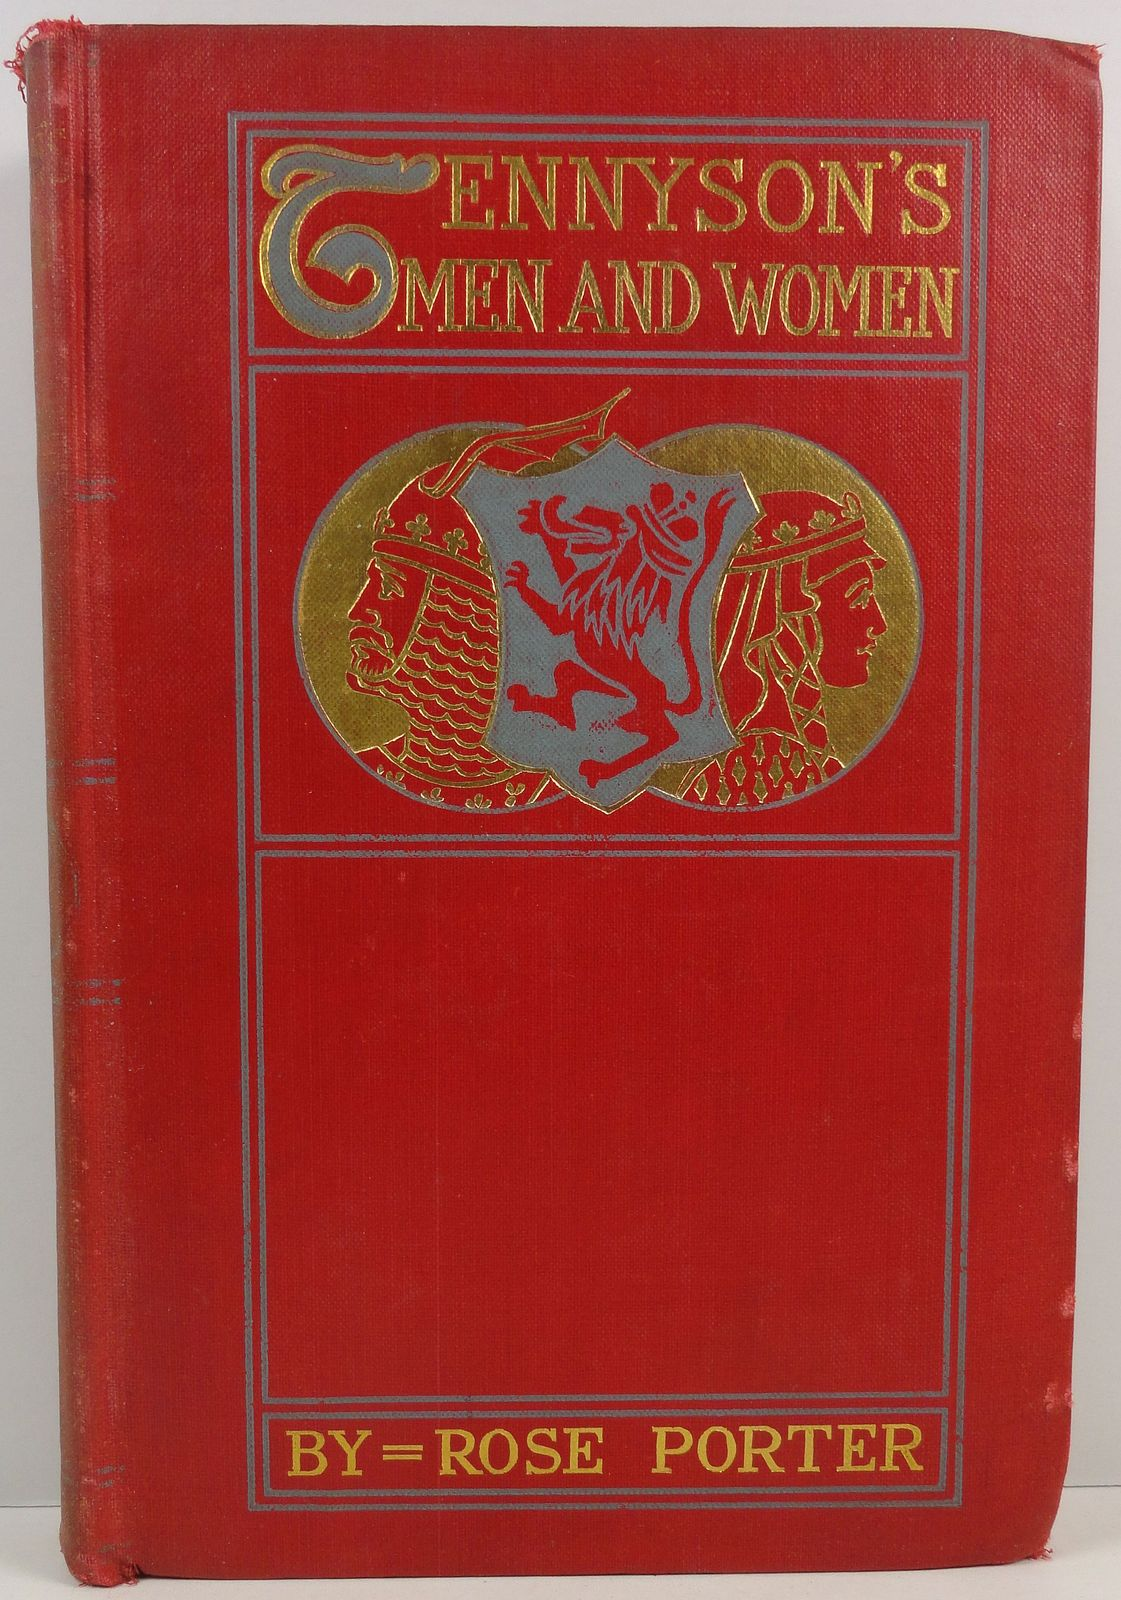 Primary image for Alfred, Lord Tennyson's Men and Women by Rose Porter 1898